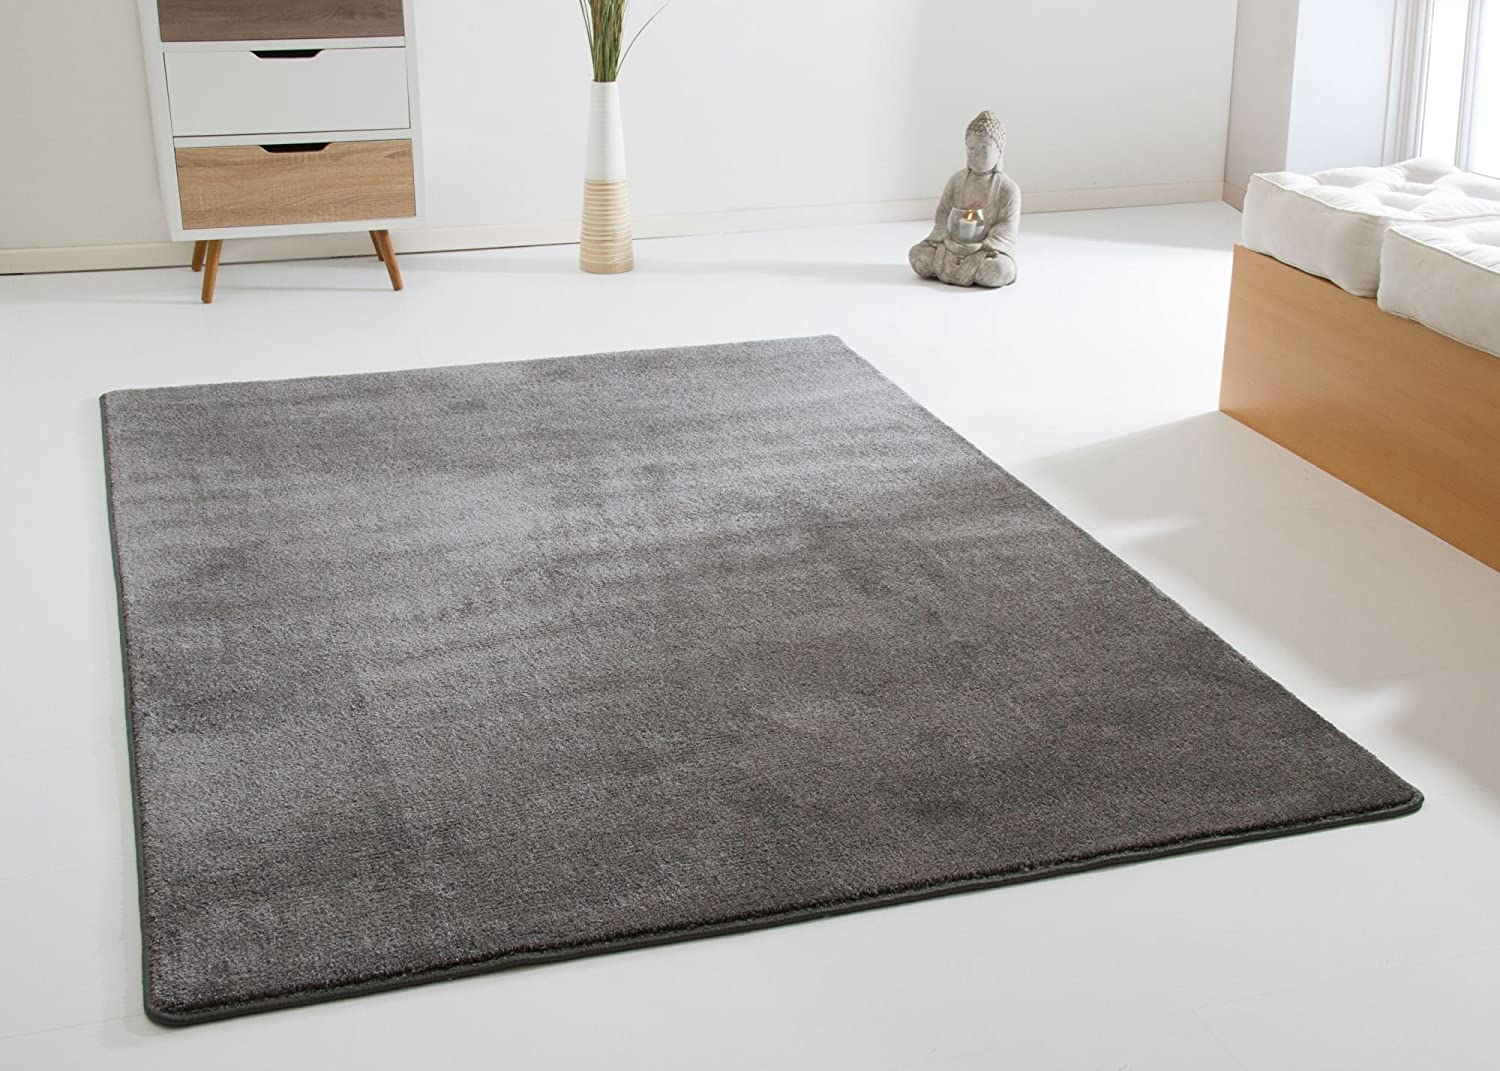 Modern Oxford Living Room Rug Hard Wearing Durable Quality Rug In Granite Size 65x130 Cm 2 2 X4 3 Amazon Co Uk Kitchen Home